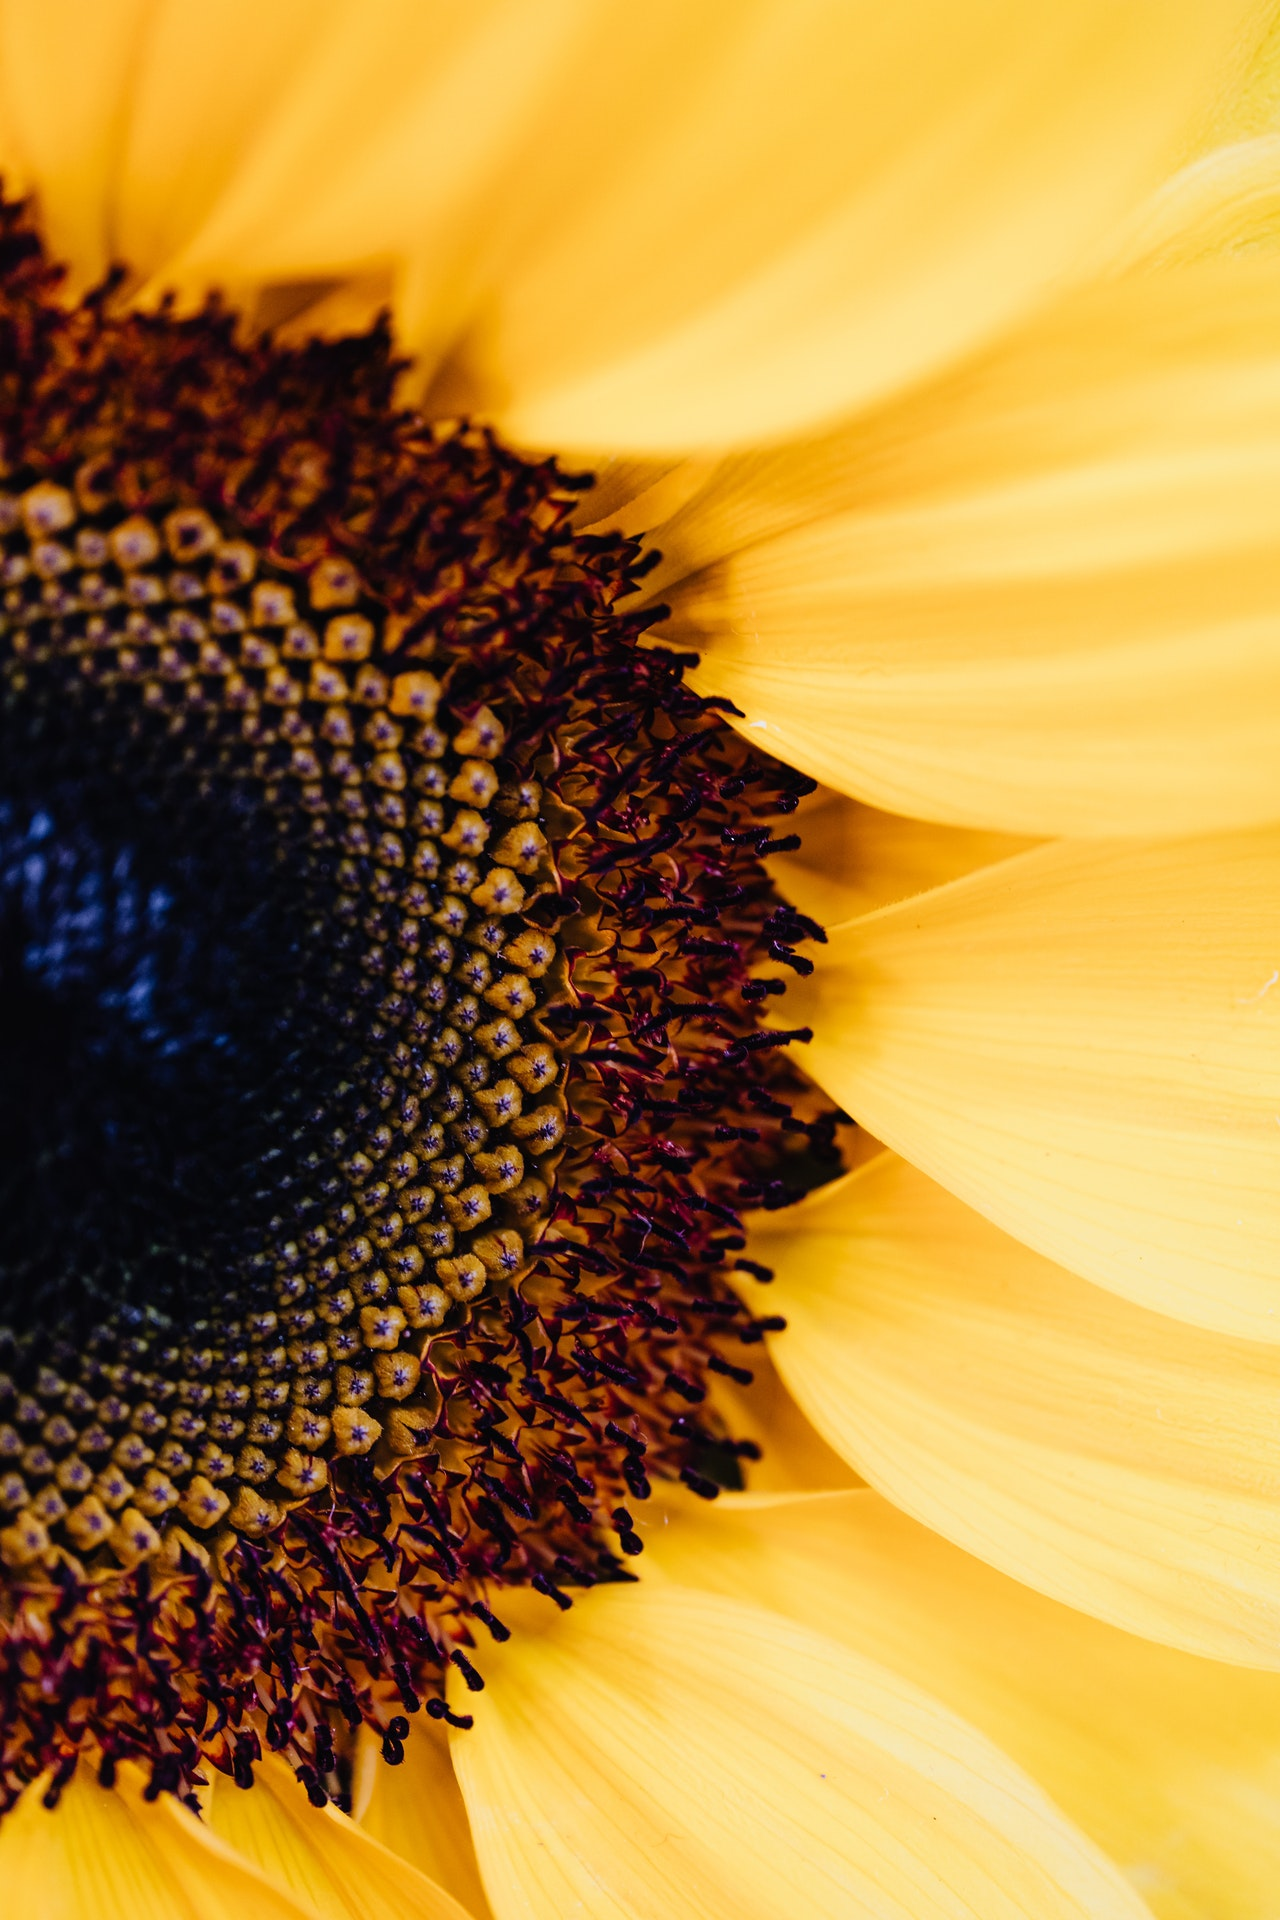 sunflower macro photo